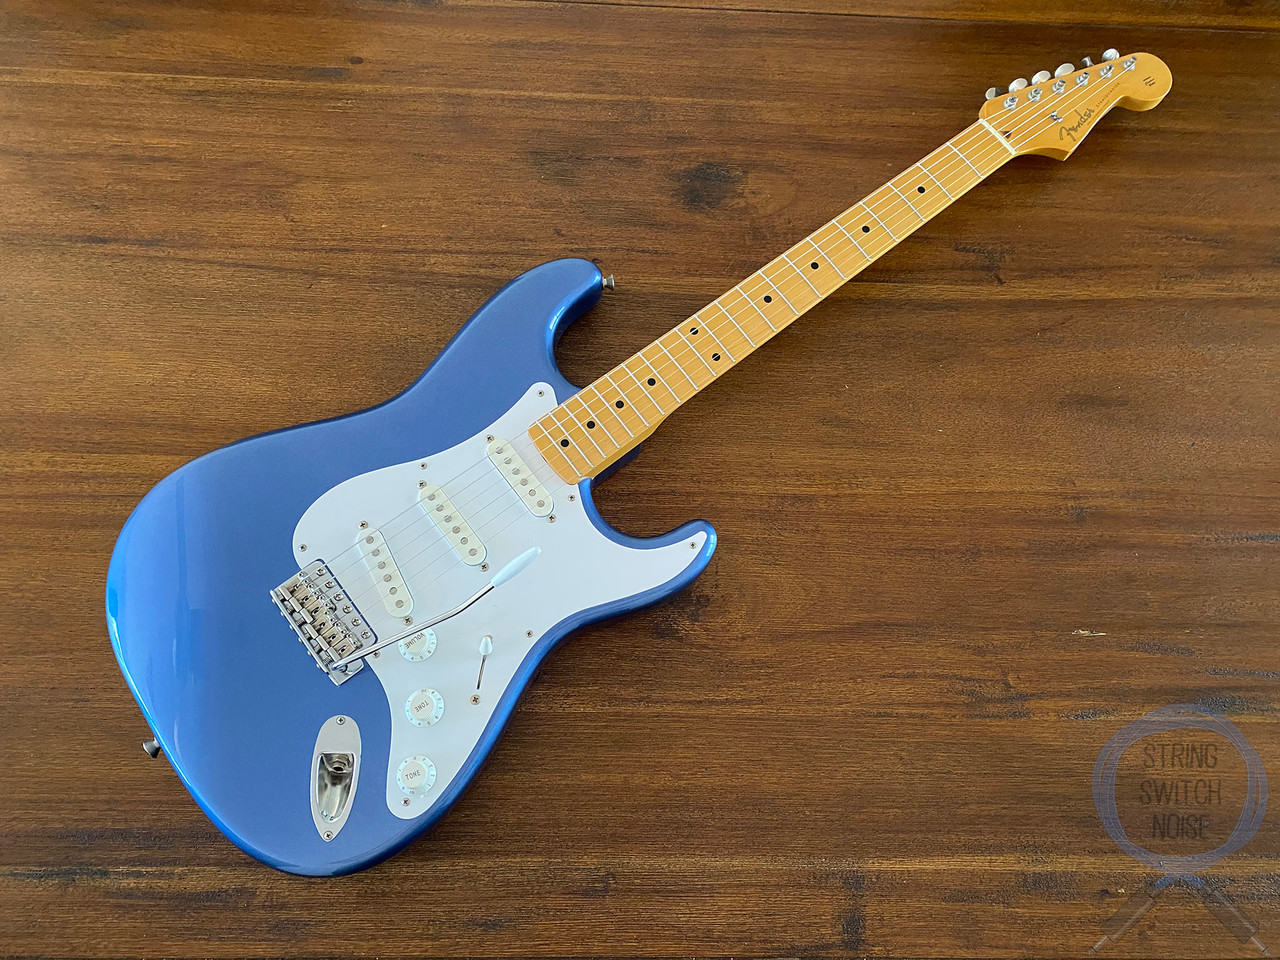 Fender Stratocaster, '57, Old Lake Placid Blue, 2015, Near MINT Condition